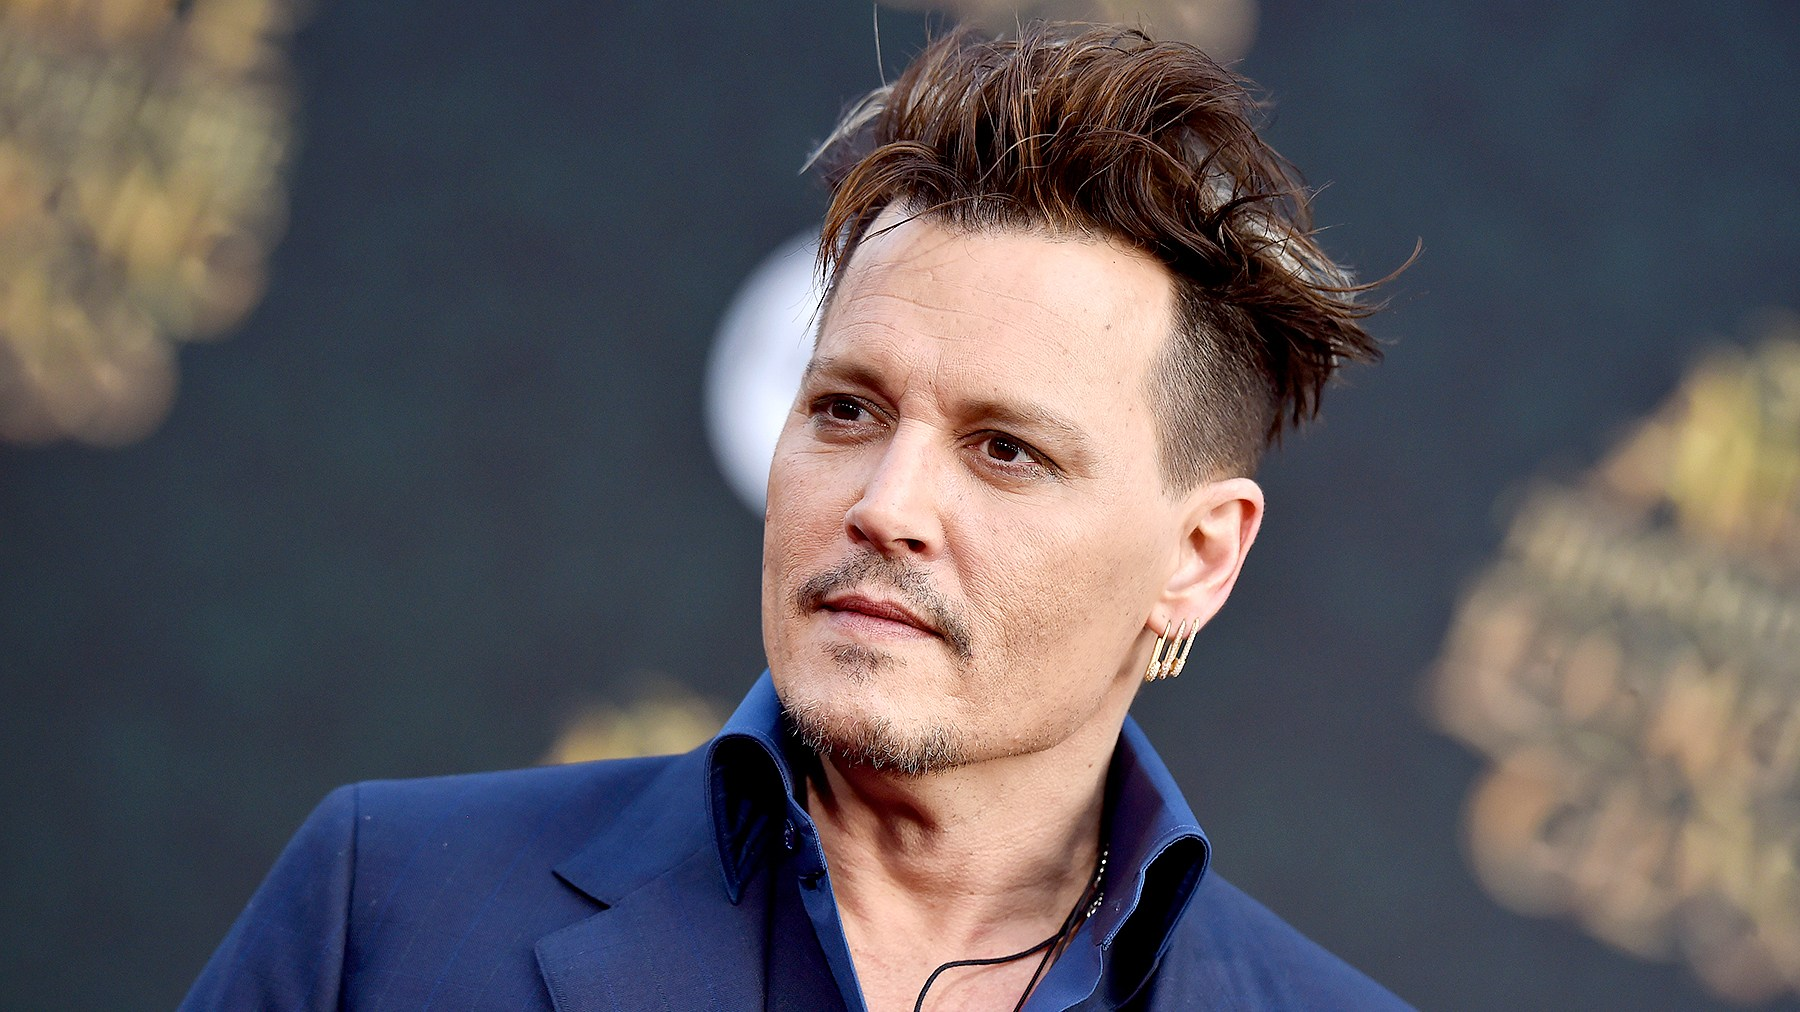 Johnny Depp arrives at the premiere of Disney's 'Alice Through The Looking Glass' at the El Capitan Theatre on May 23, 2016 in Hollywood, California.